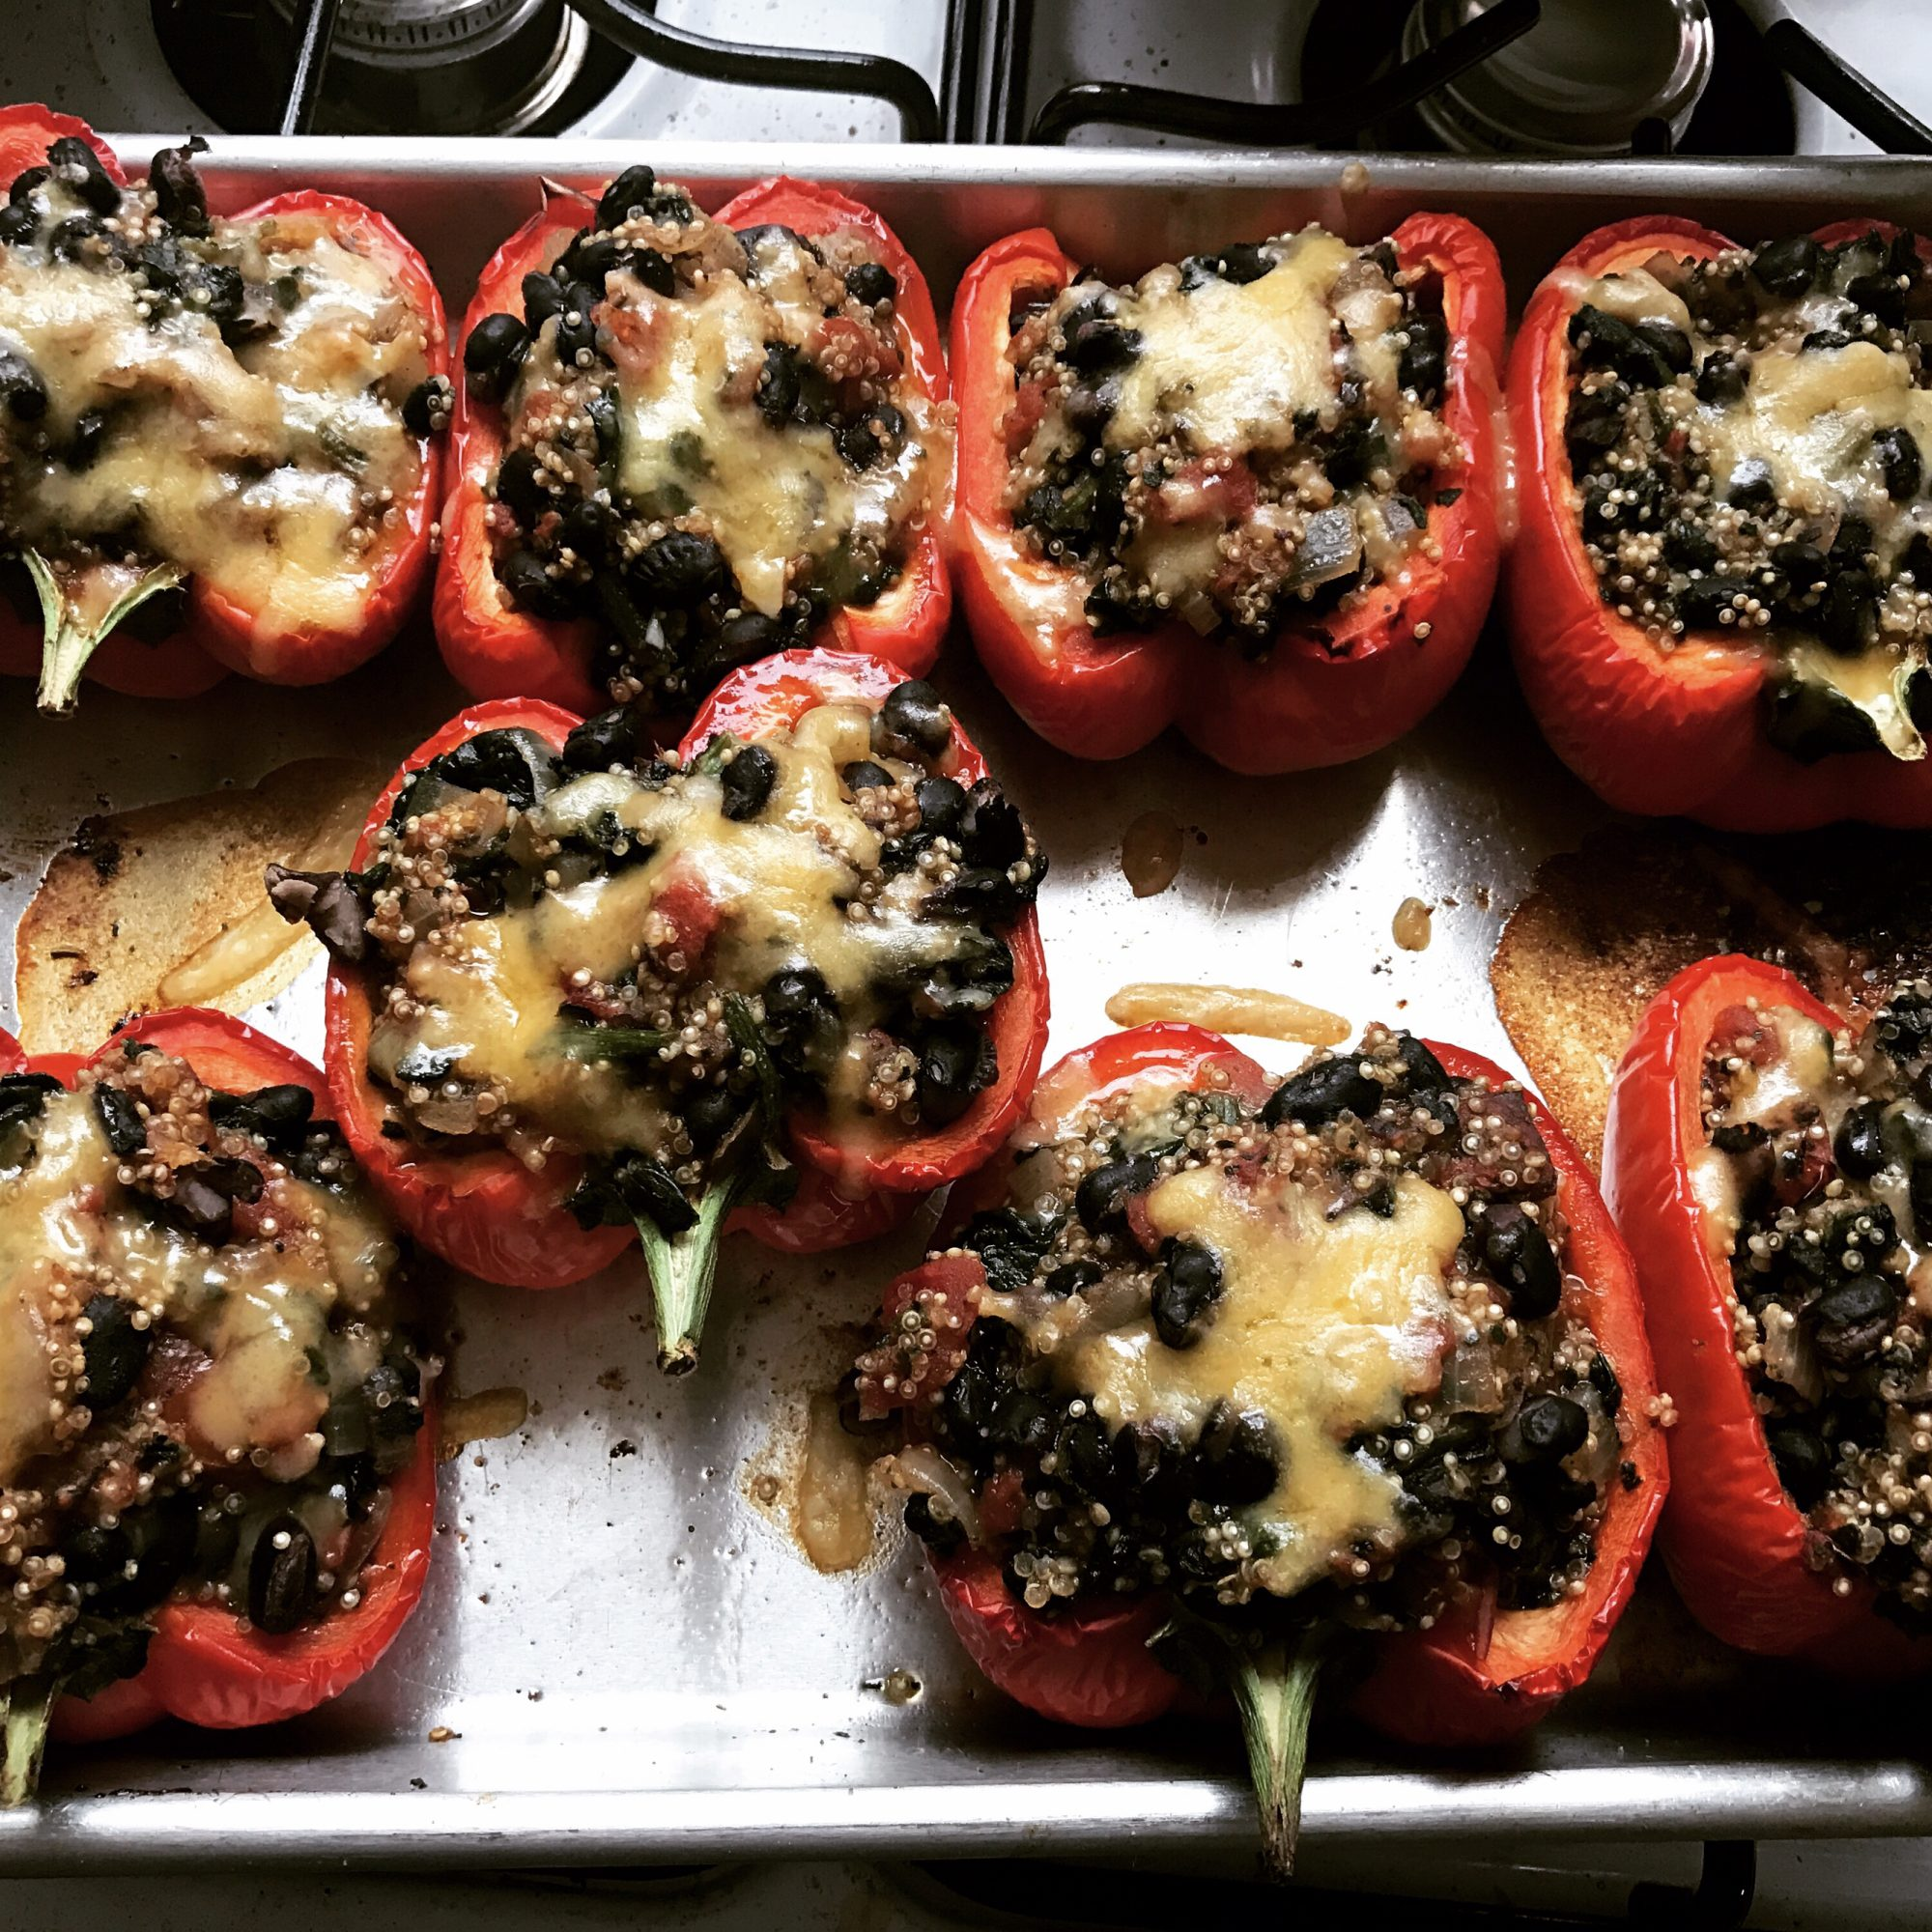 red bell pepper halves stuffed with quinoa, black beans, and cheese